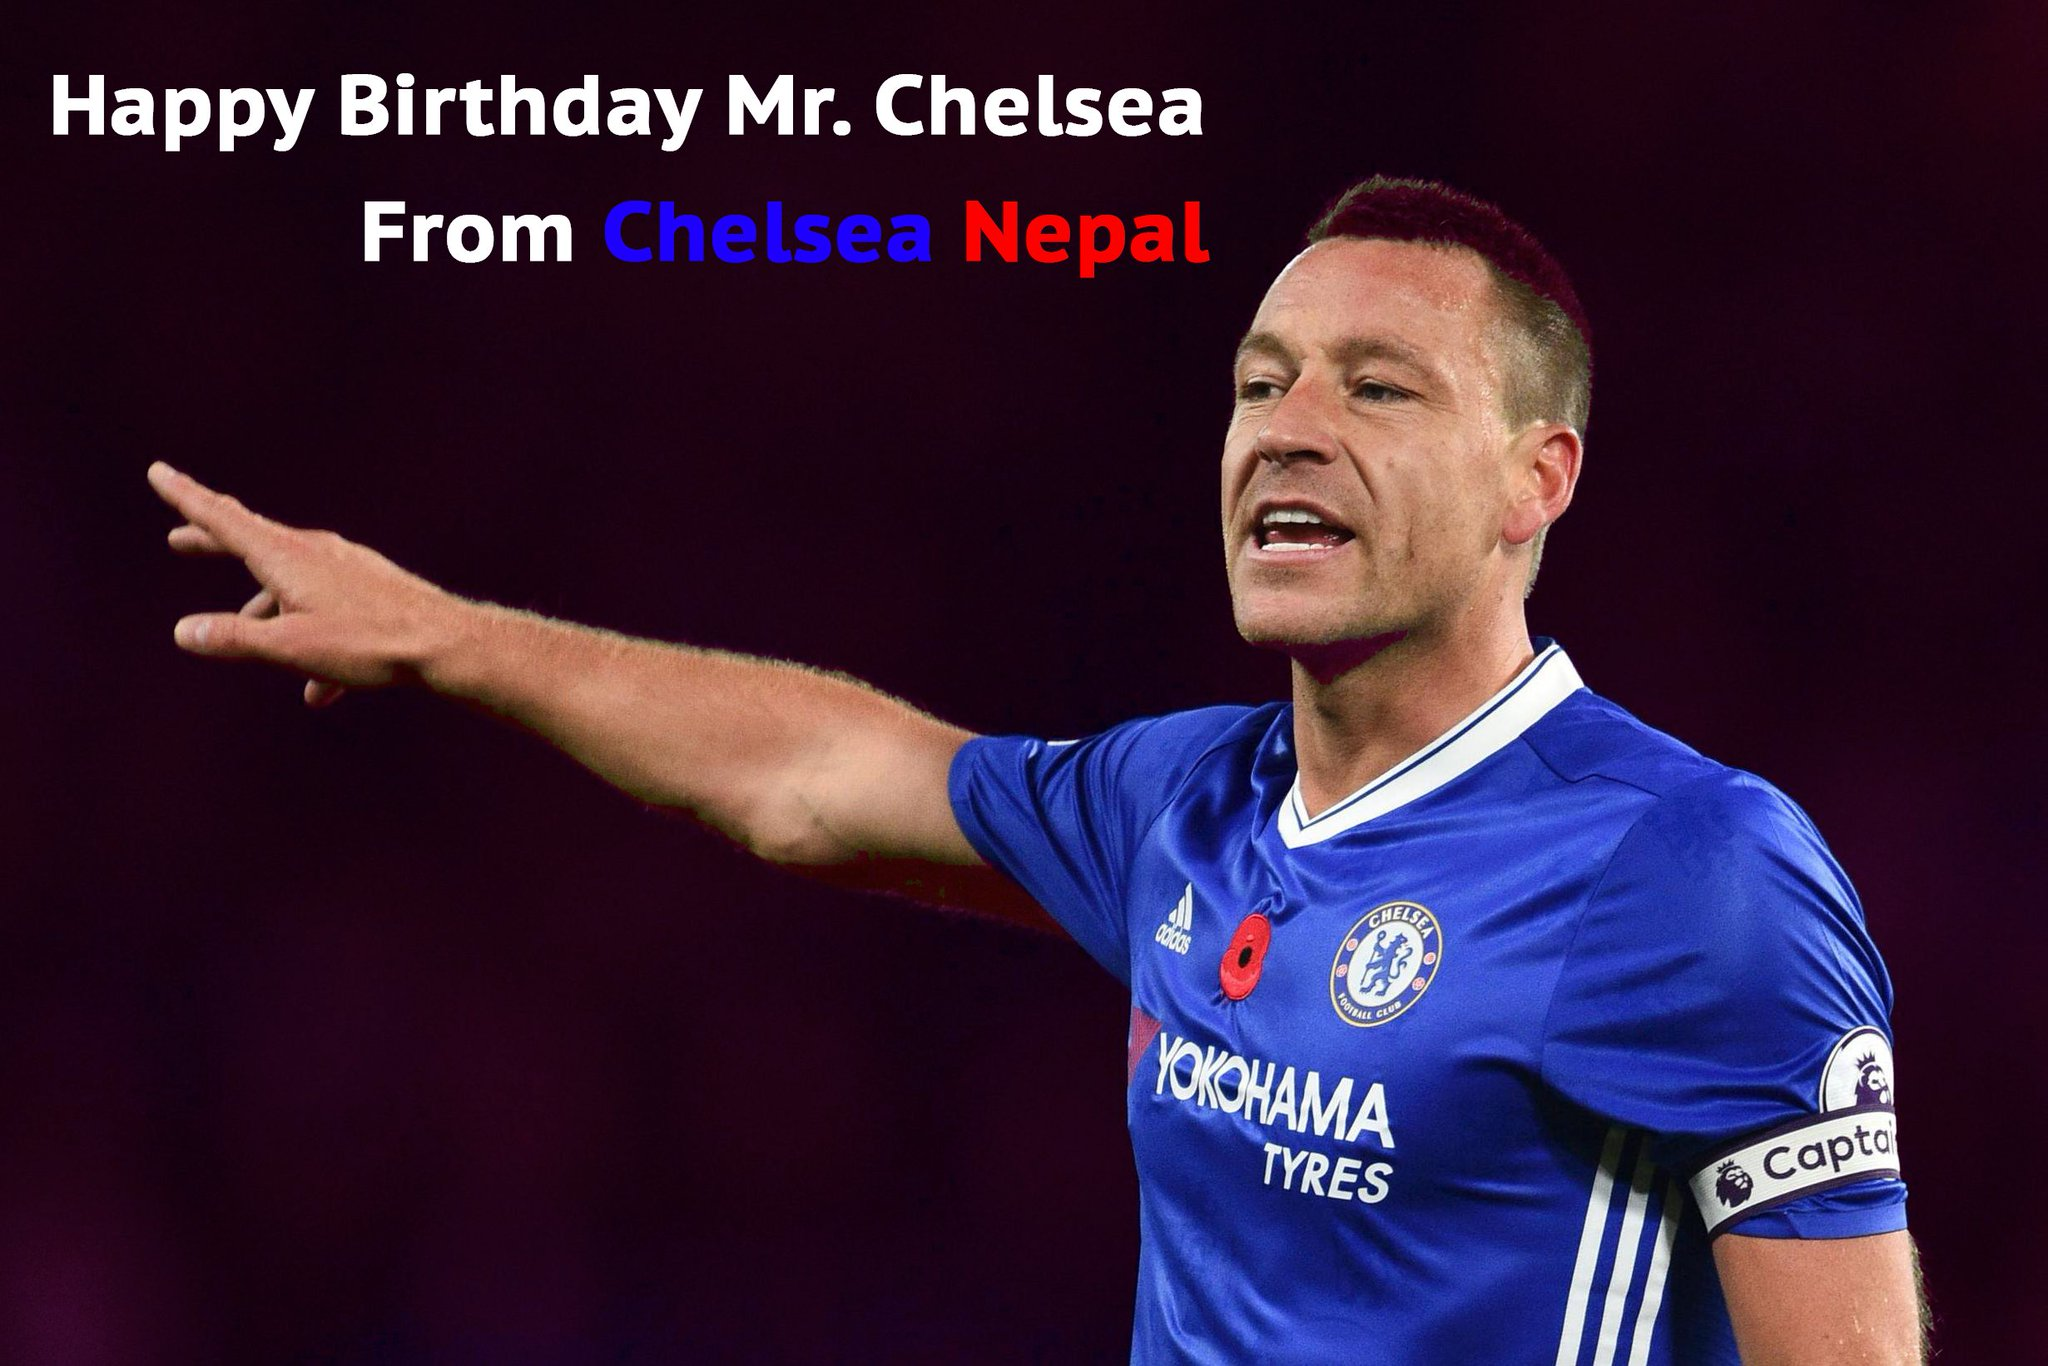 Happy Birthday John Terry! Captain, Leader, Legend. from Chelsea Nepal family.